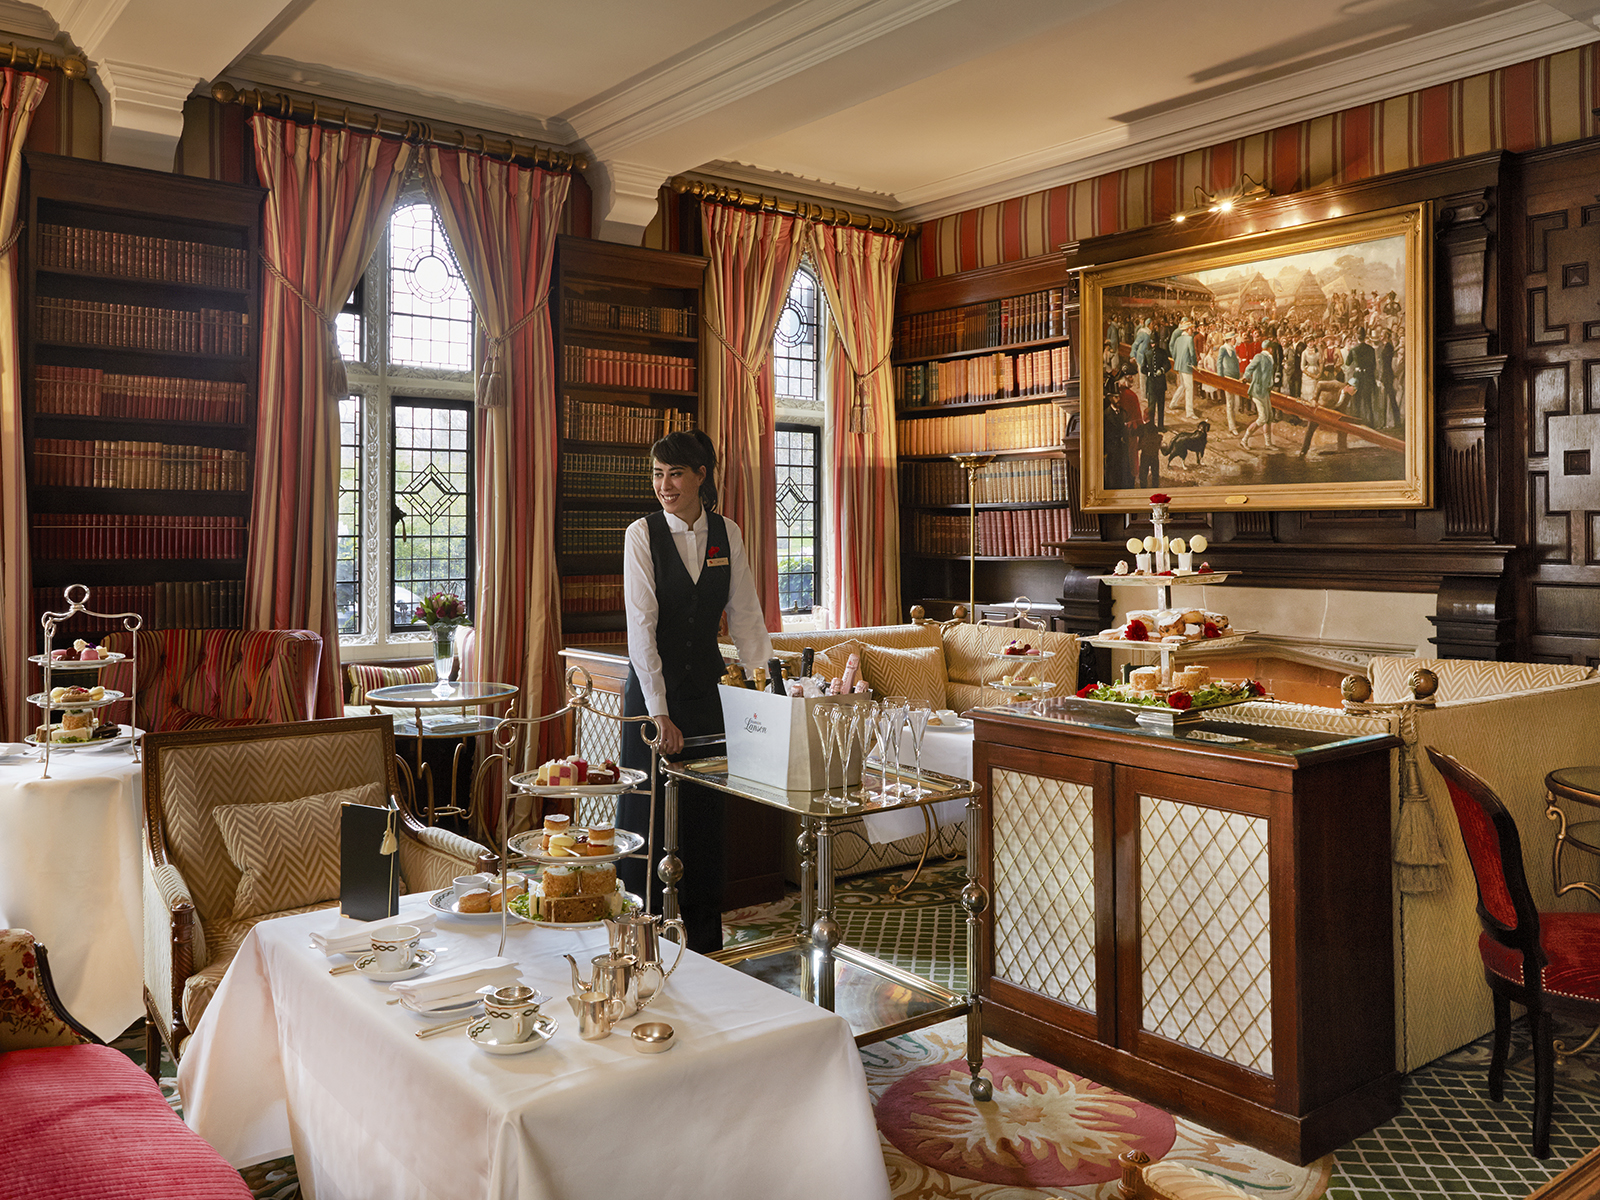 The Park Lounge in The Milestone Hotel set for afternoon tea